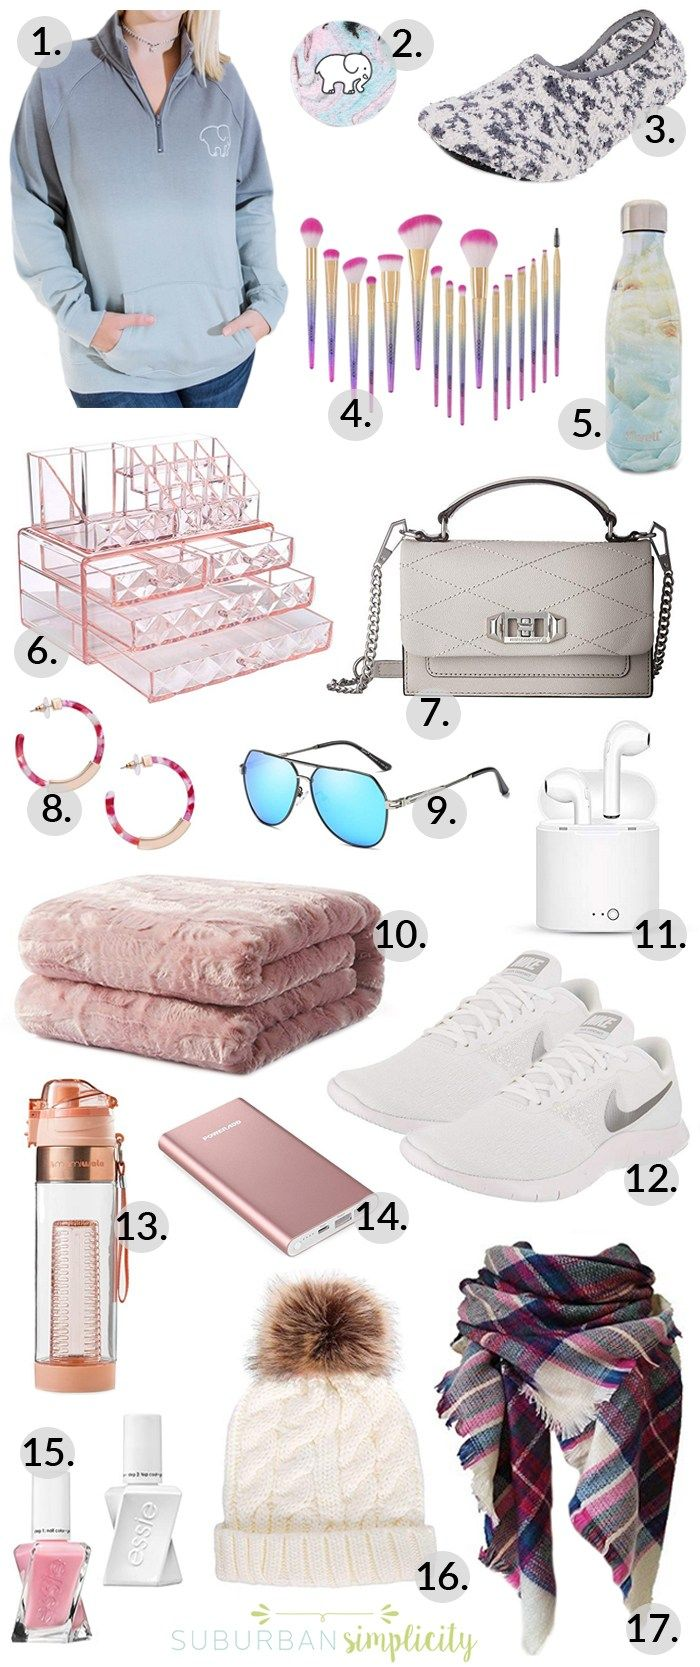 Christmas Gifts for Teen Girls - Suburban Simplicity